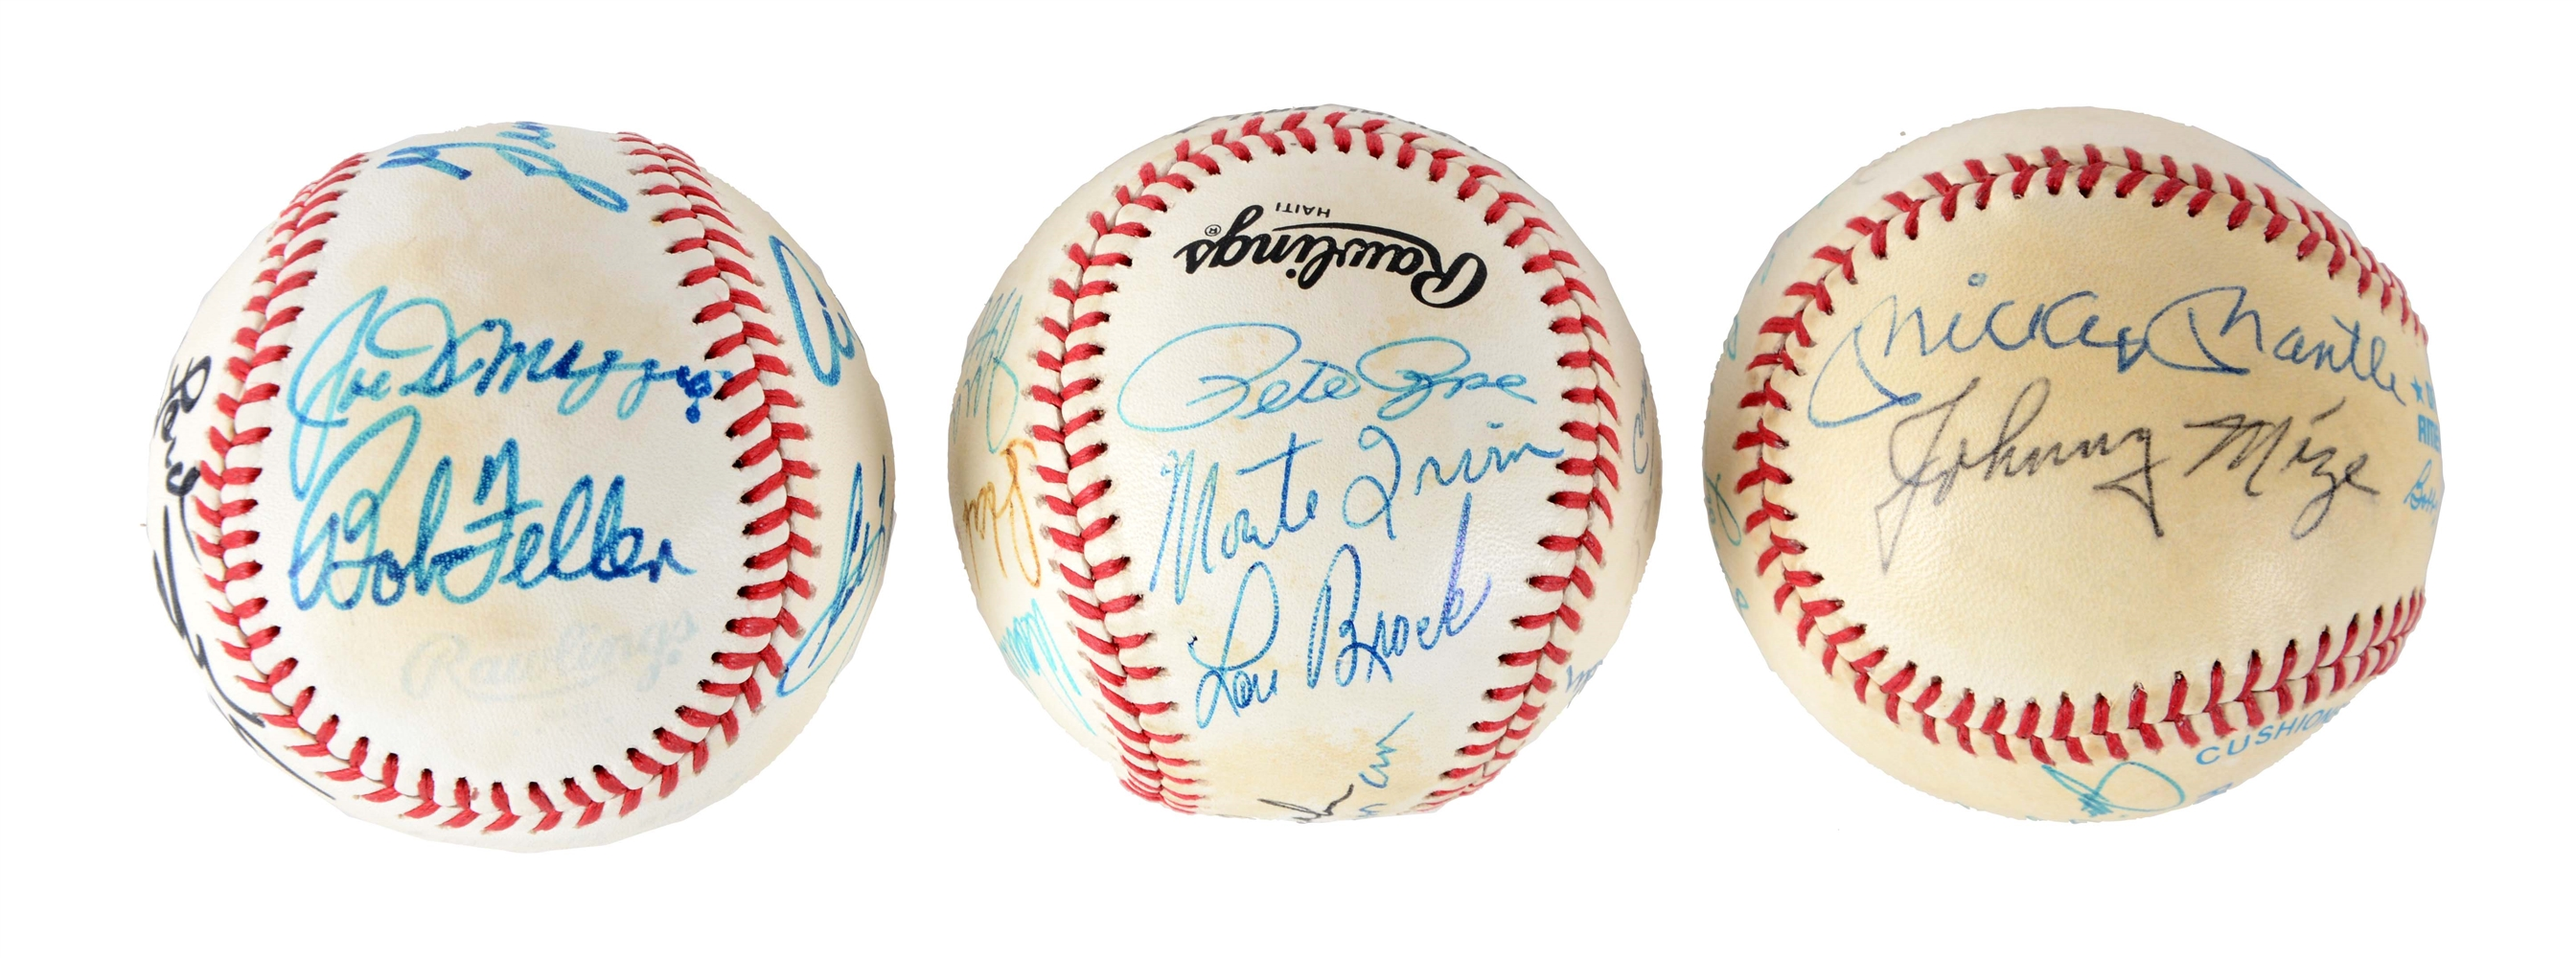 Lot of 3: Collection of HOF Signed Baseballs.